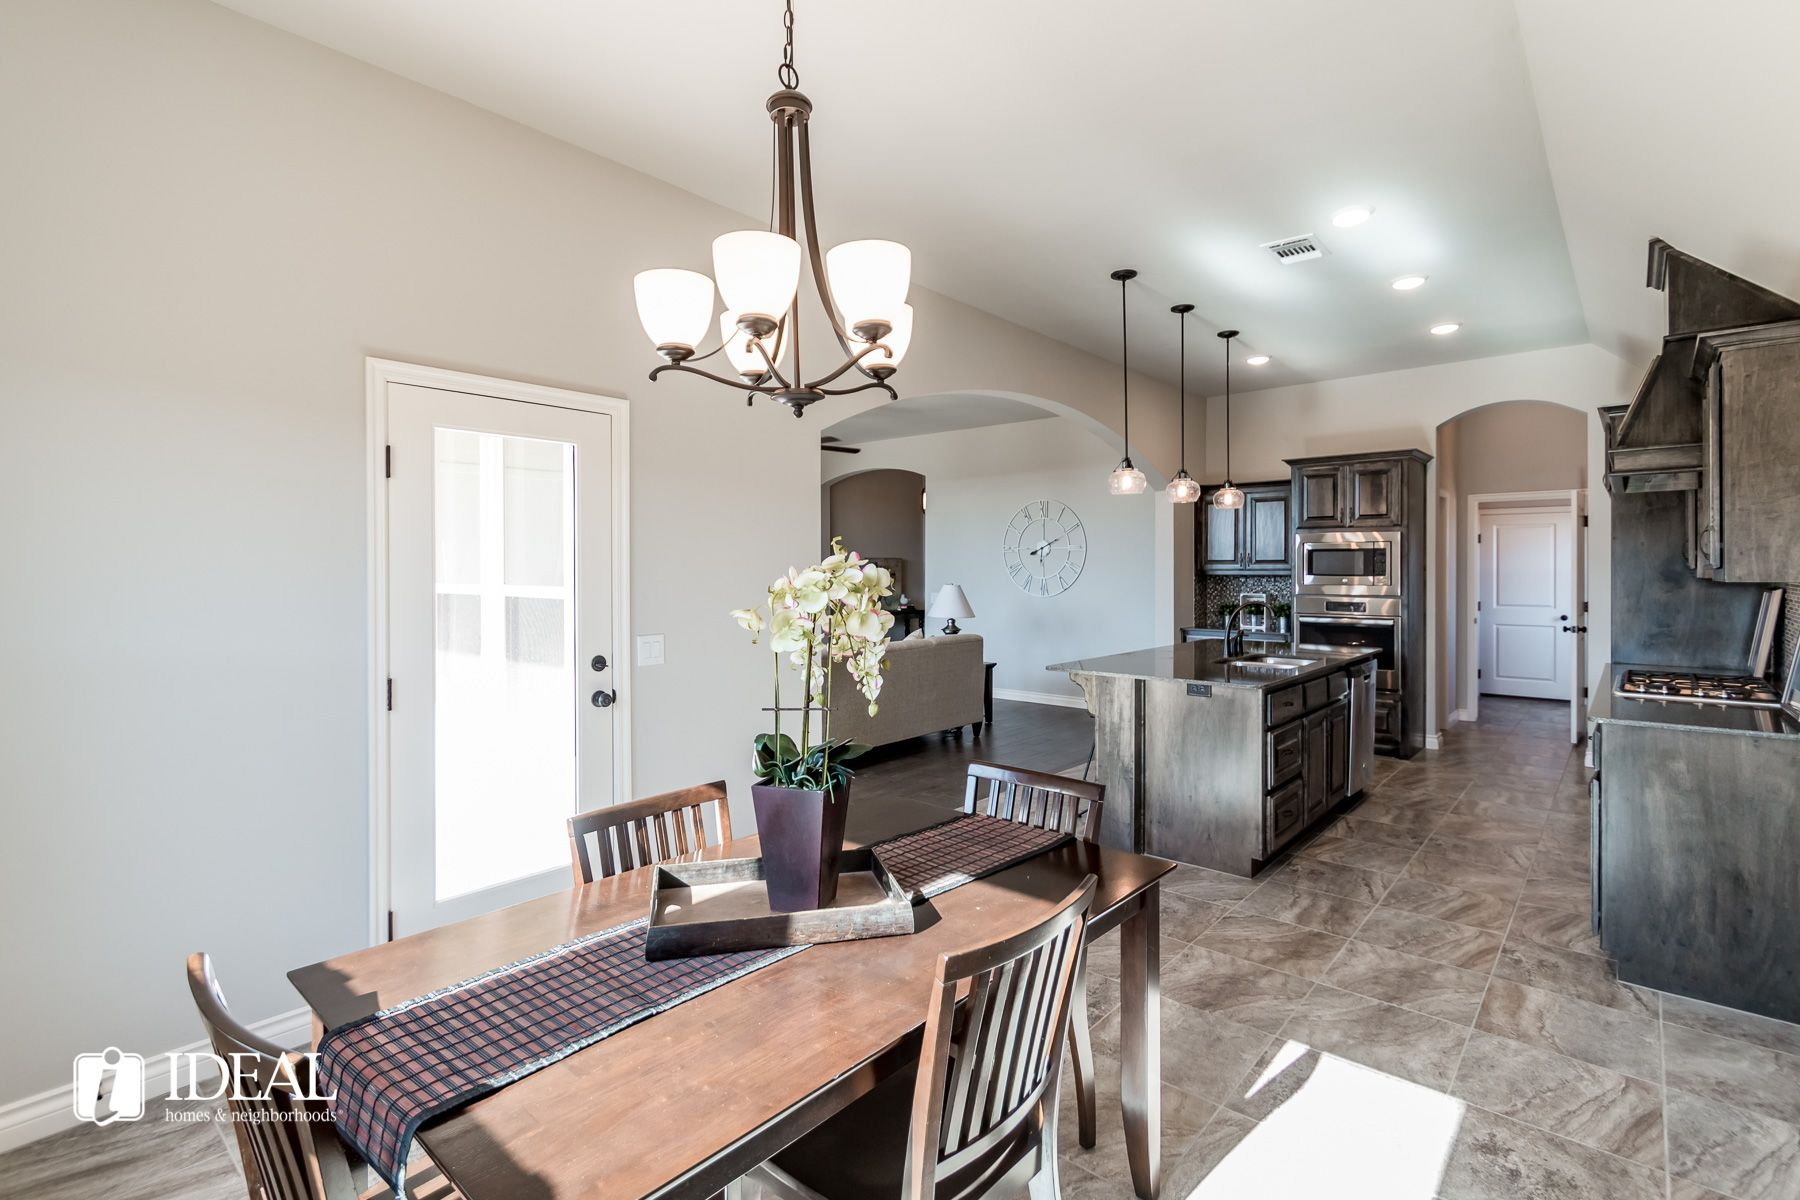 Kitchen featured in the Stafford By Ideal Homes in Oklahoma City, OK